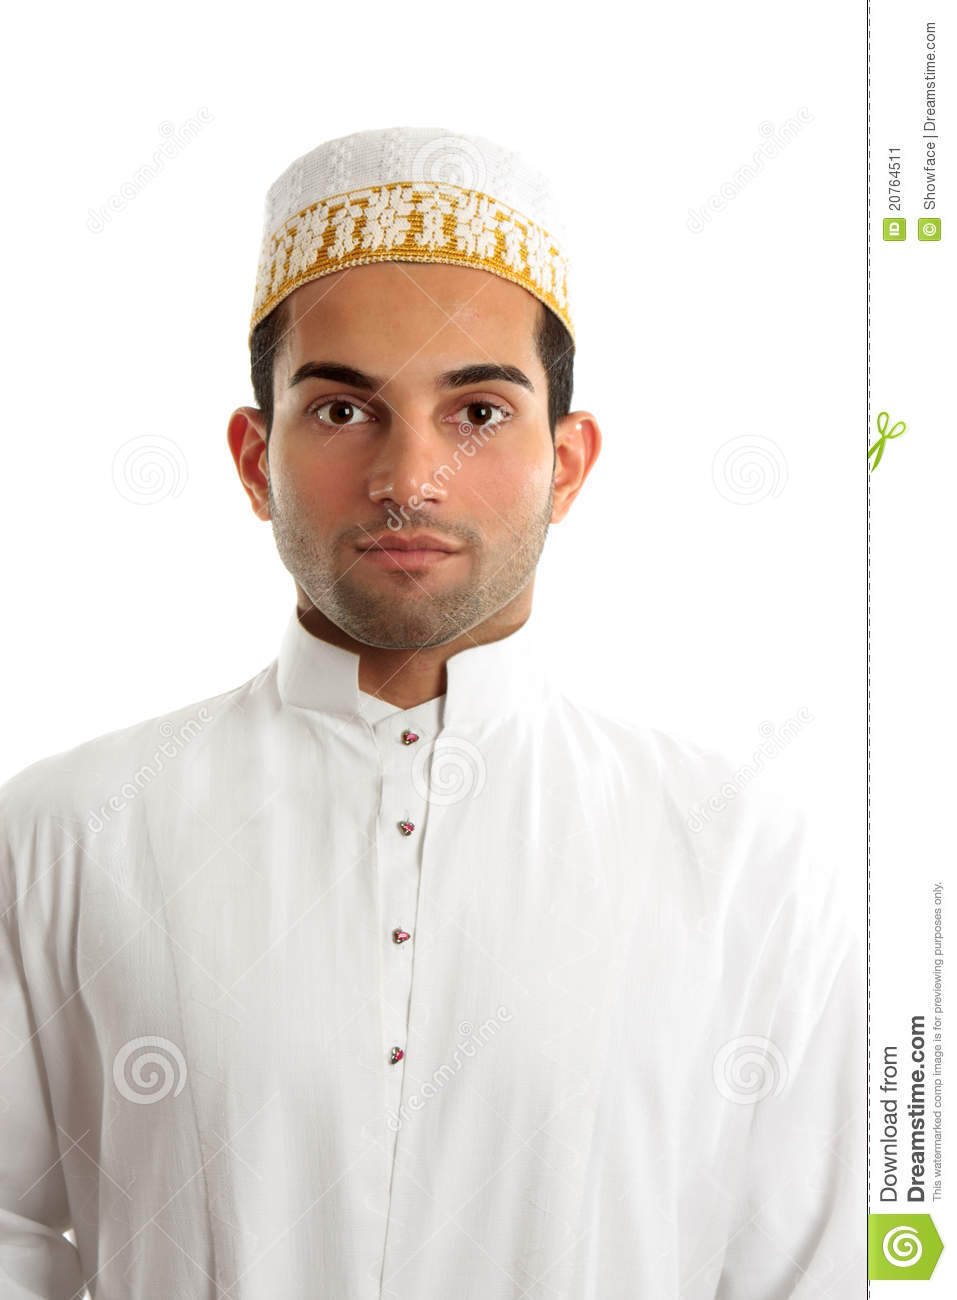 hanlontown middle eastern single men Actually a lot of middle eastern families don't really care if their daughter likes white guys it's easier to date within our own culture because we understand it better but i know of very few middle eastern families that are opposed to giving their daughters to american men.